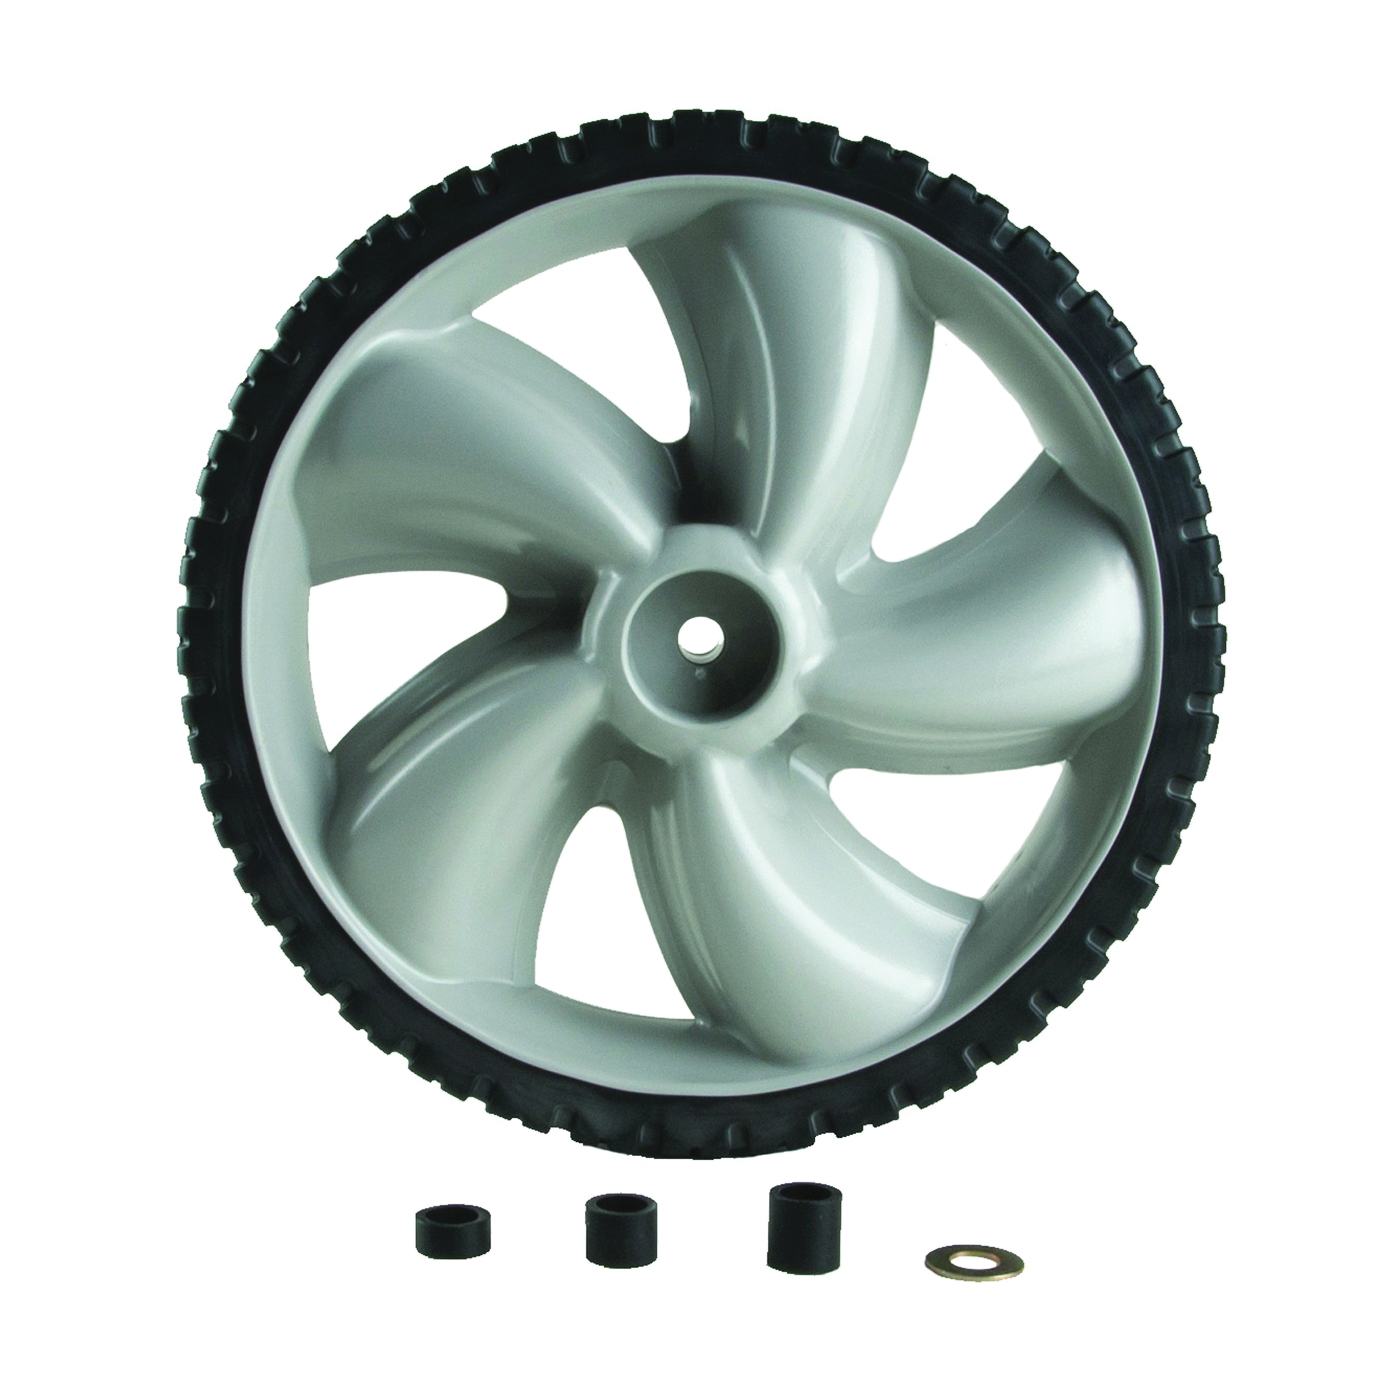 Picture of ARNOLD 490-324-0002 Lawn Mower Wheel, Replacement, Plastic/Rubber